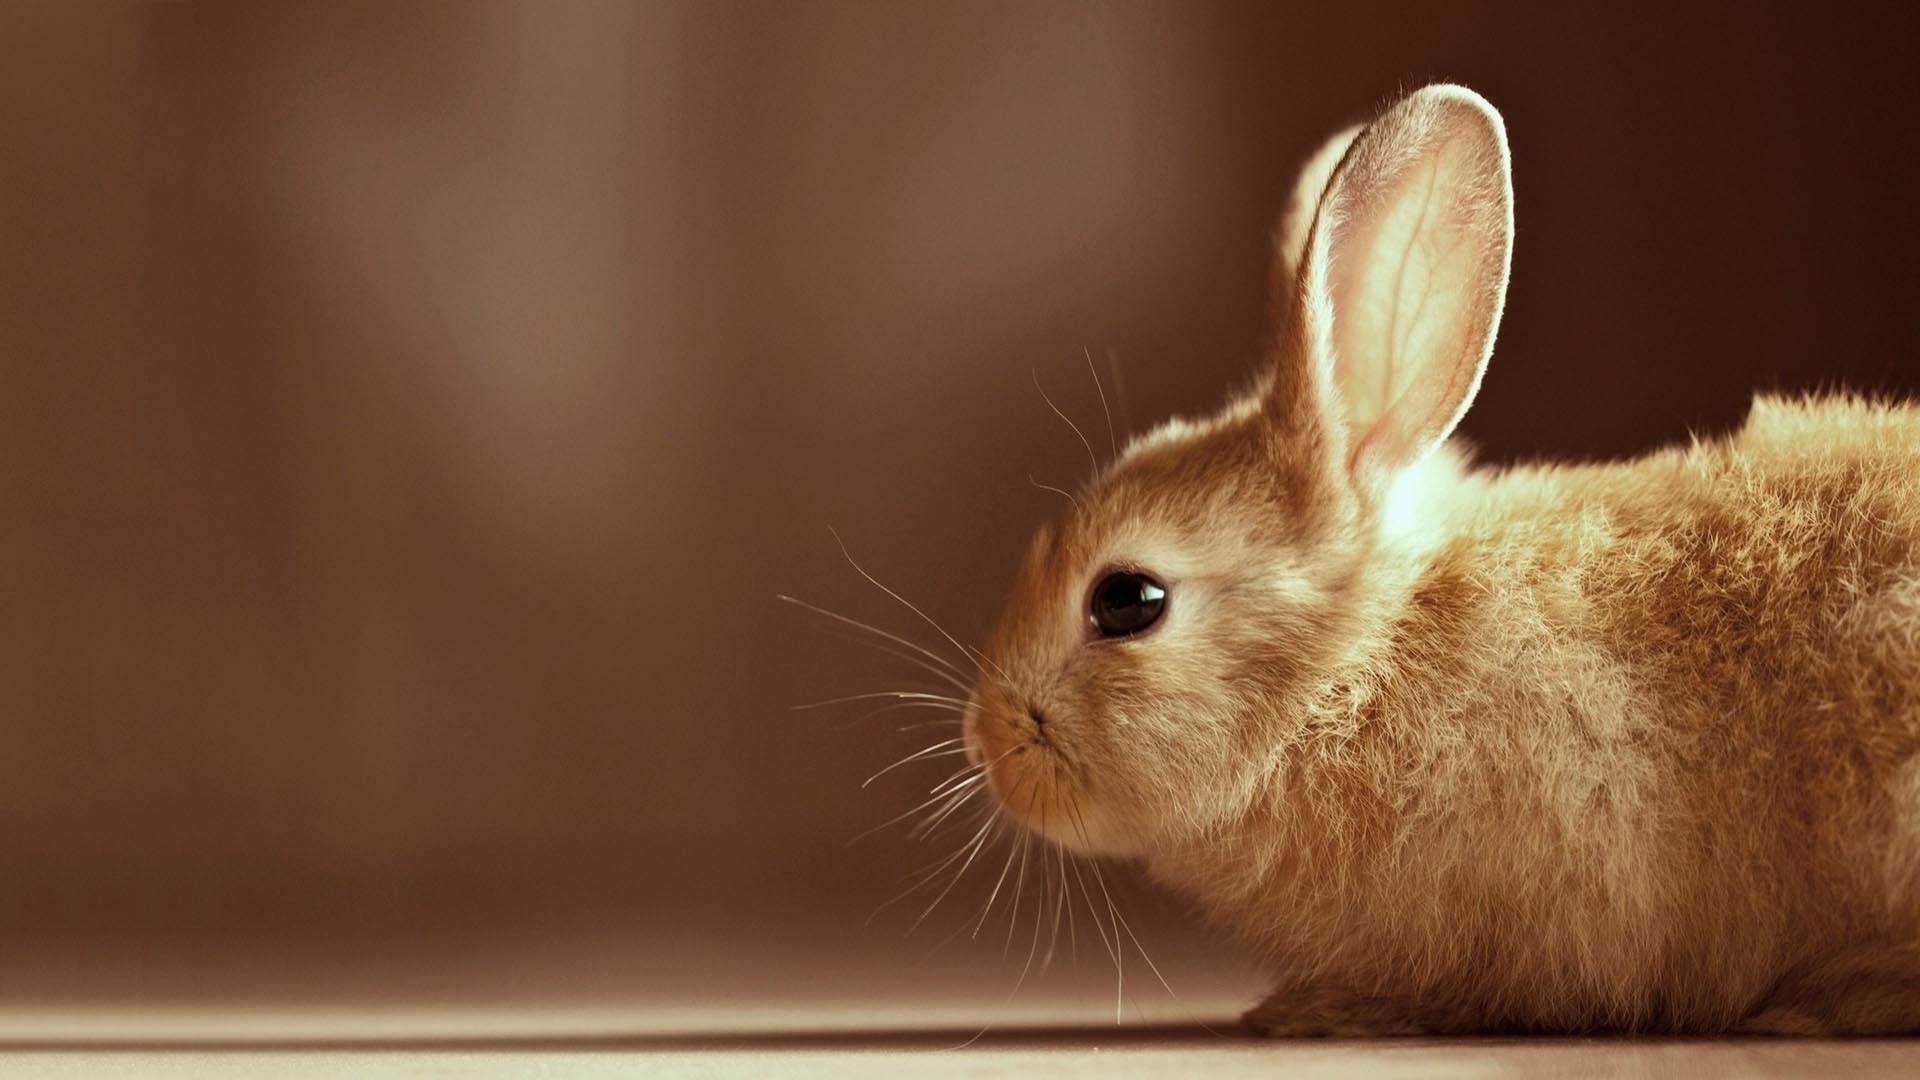 Page 709 | Hd adorable little bunny wallpaper , Photos lady gagas .